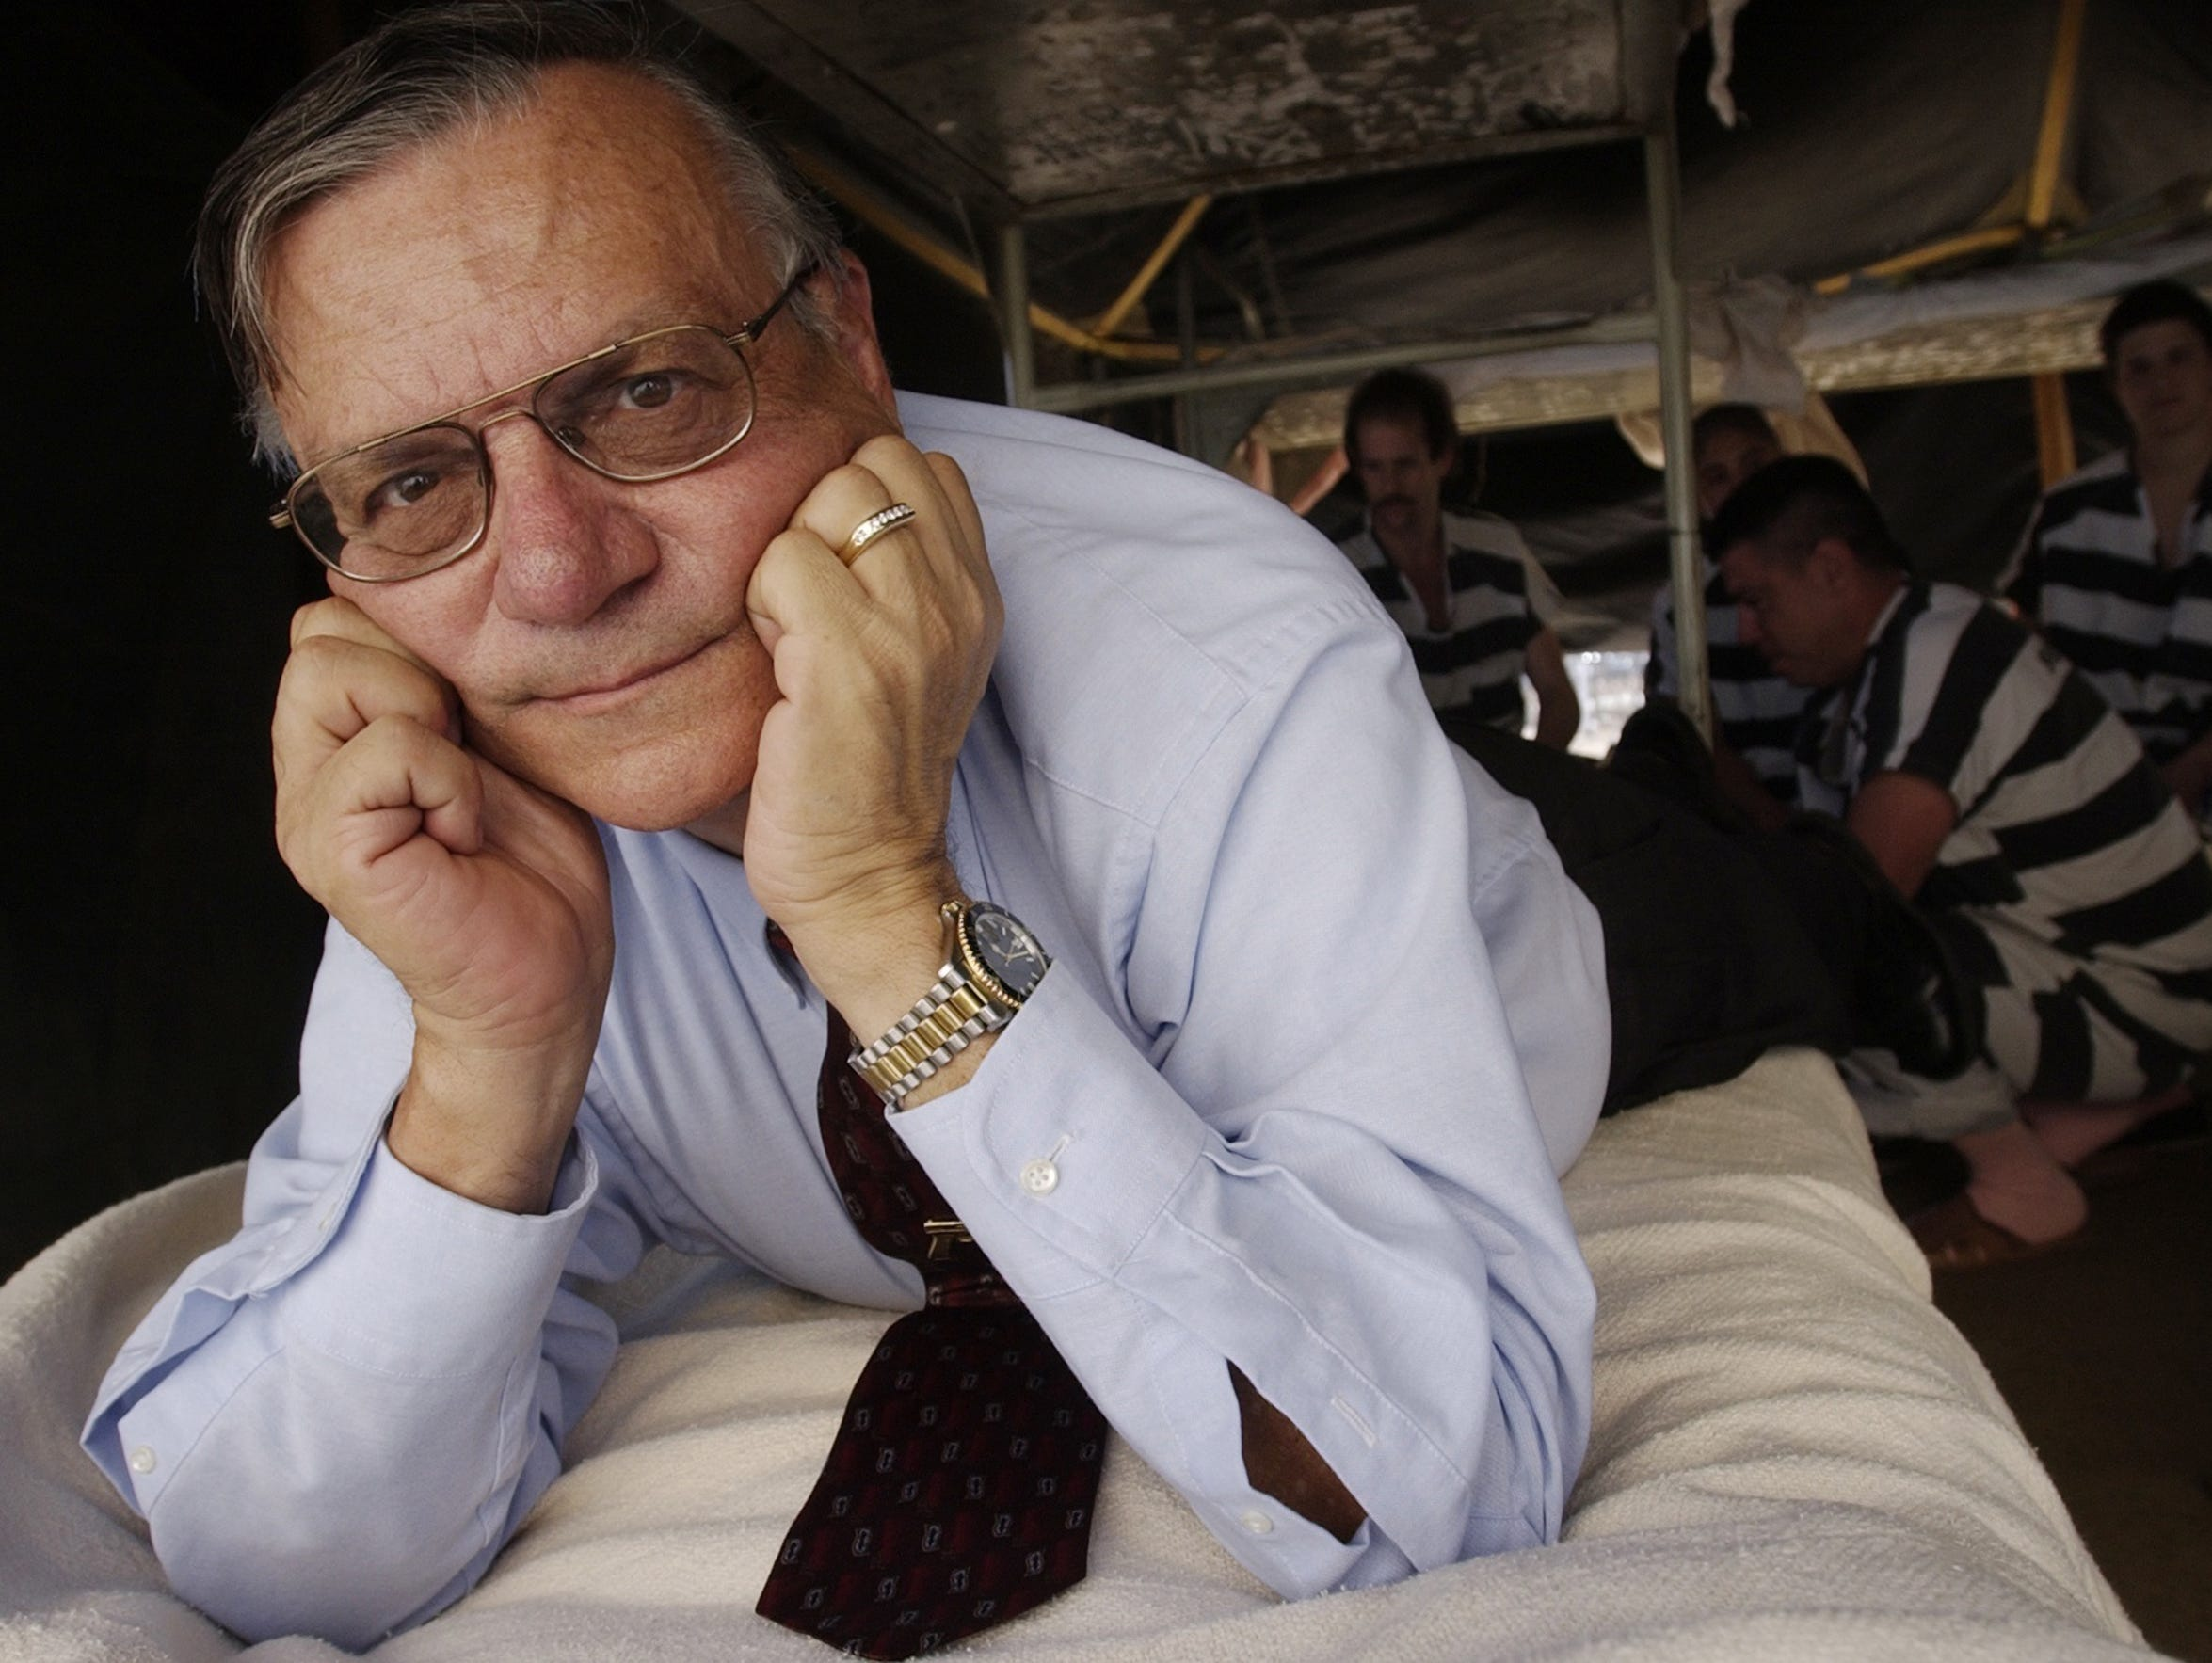 Arpaio sprawls on a cot inside Tent City in 2002. The